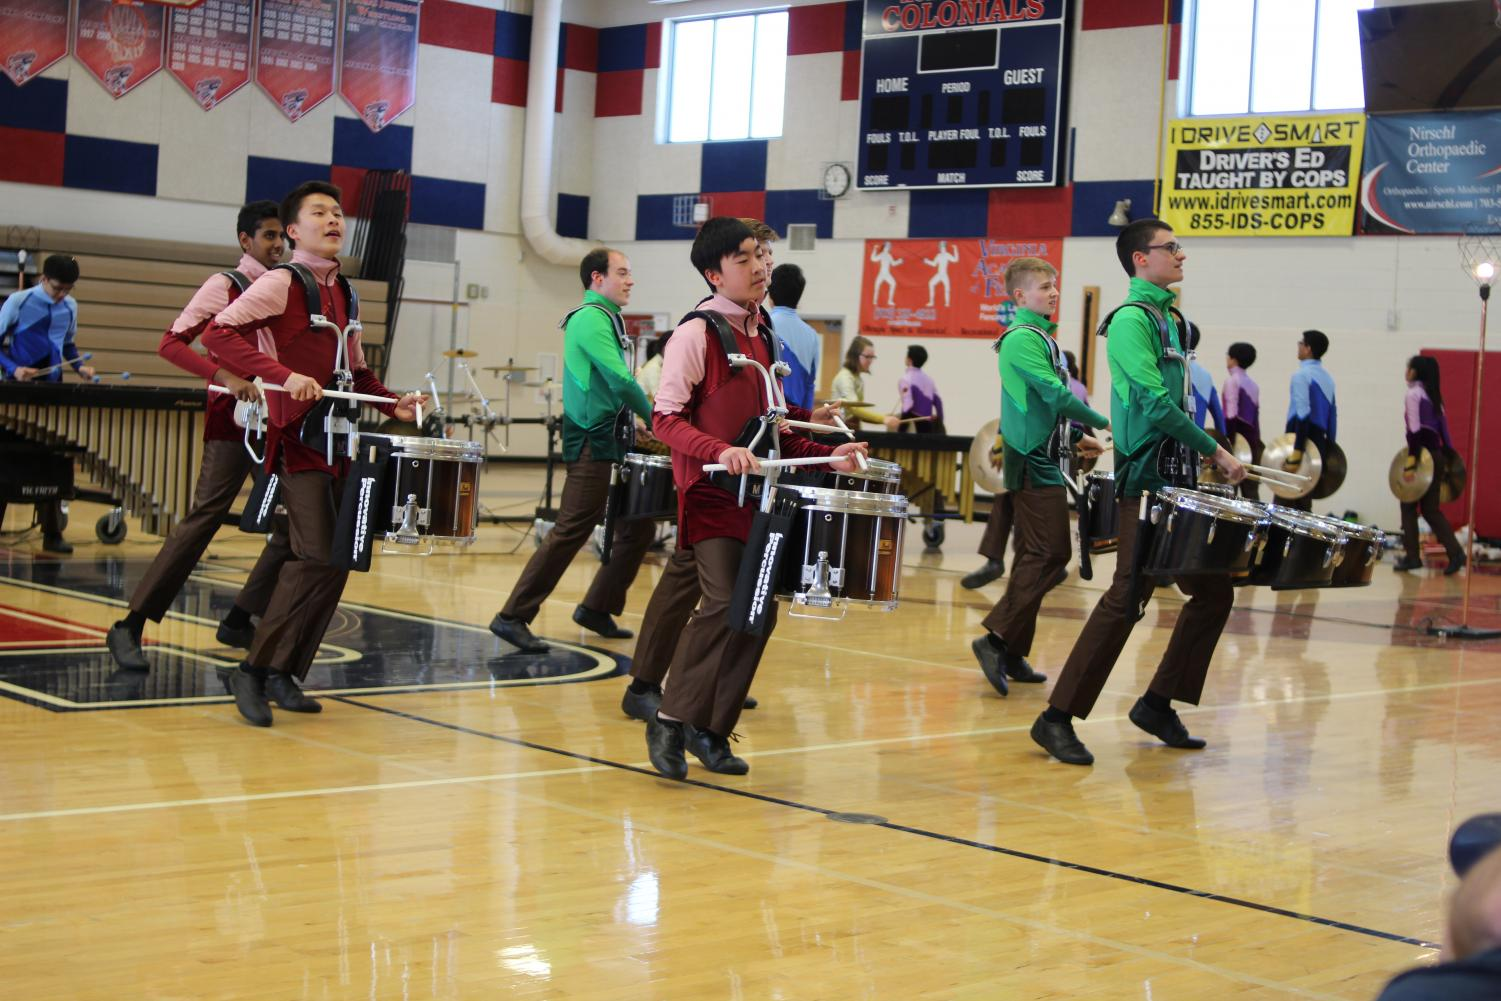 A+group+of+percussionists+move+from+side+to+side+while+tapping+quickly+on+their+instruments.+%E2%80%9CEarly+on+in+the+season%2C+we+were+learning+playing+basics+marching+basics+and+we+began+to+learn+the+music+for+the+show%2C%E2%80%9D+freshman+Chiraag+Govind+said.+%E2%80%9C+We+essentially+practiced+everyone+moving+from+one+dot+on+a+grid+to+another+on+certain+counts+until+we+had+all+of+the+basic+movement.%E2%80%9D%0A